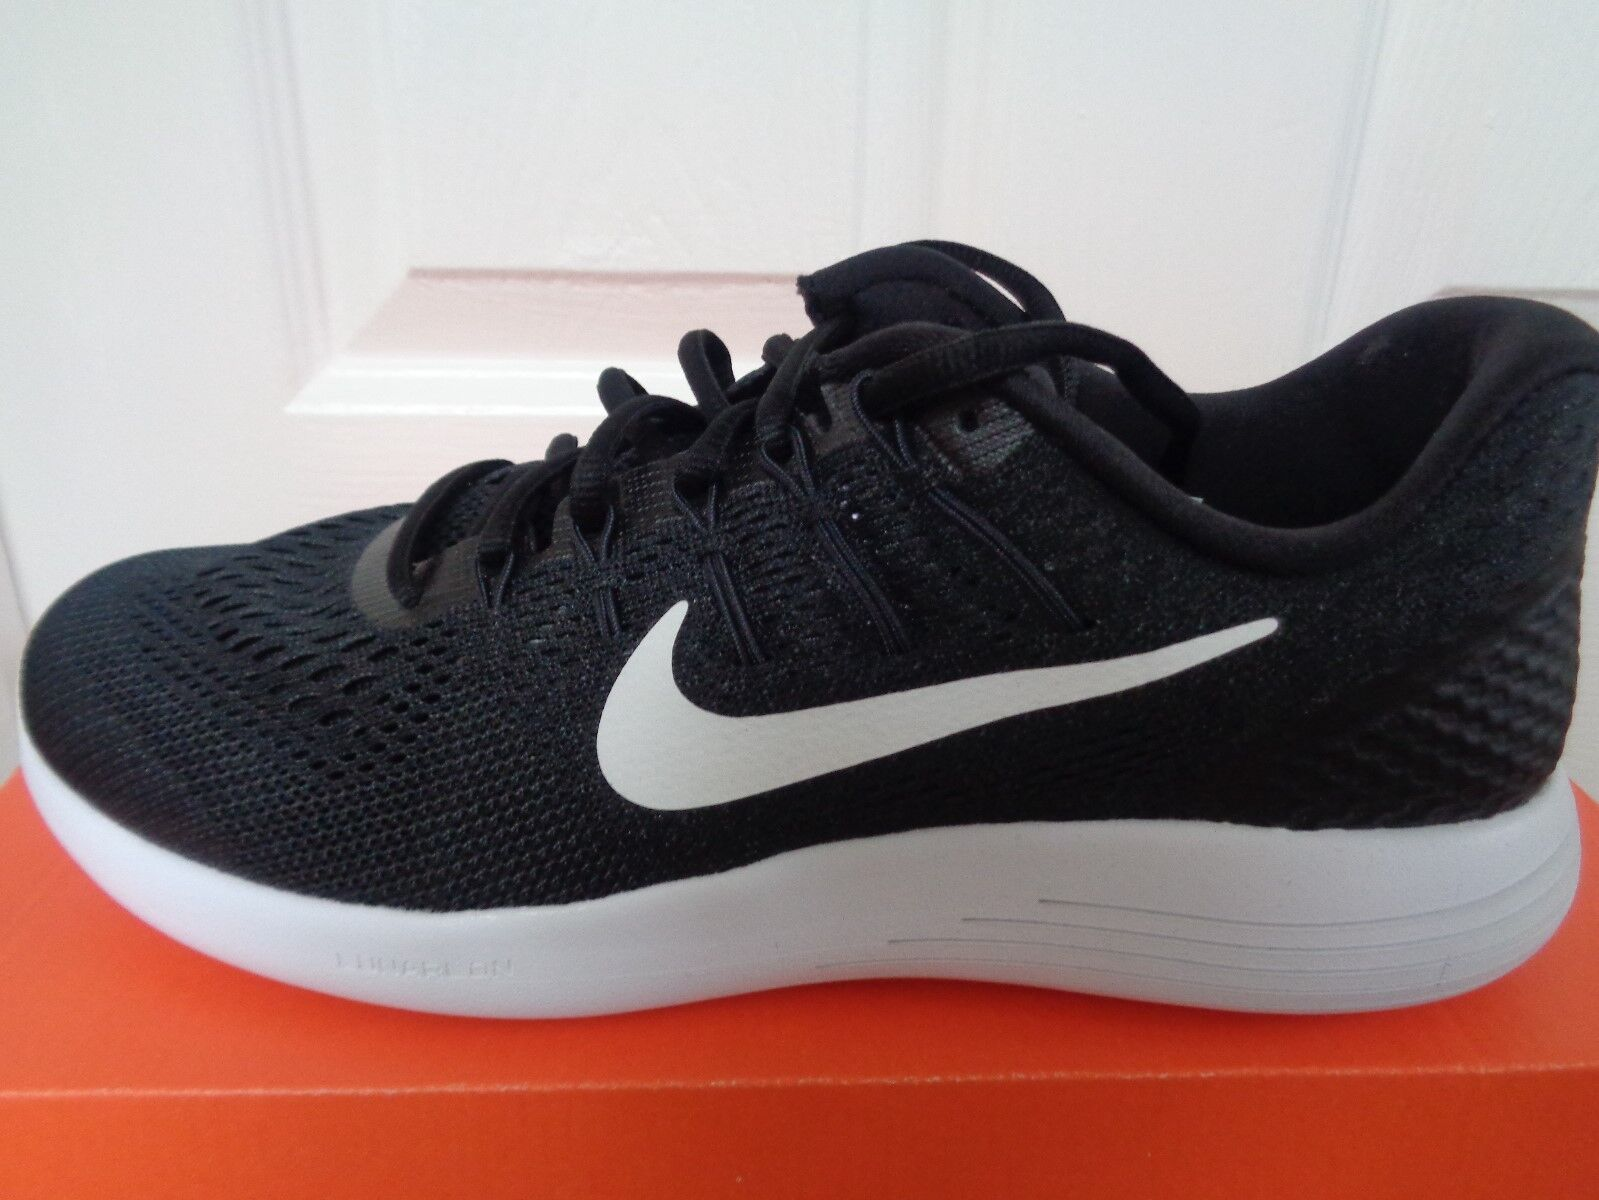 Nike lunarglide 8 mens trainers 42.5 sneakers AA8676 001 eu 42.5 trainers us 9 NEW+BOX e778ff